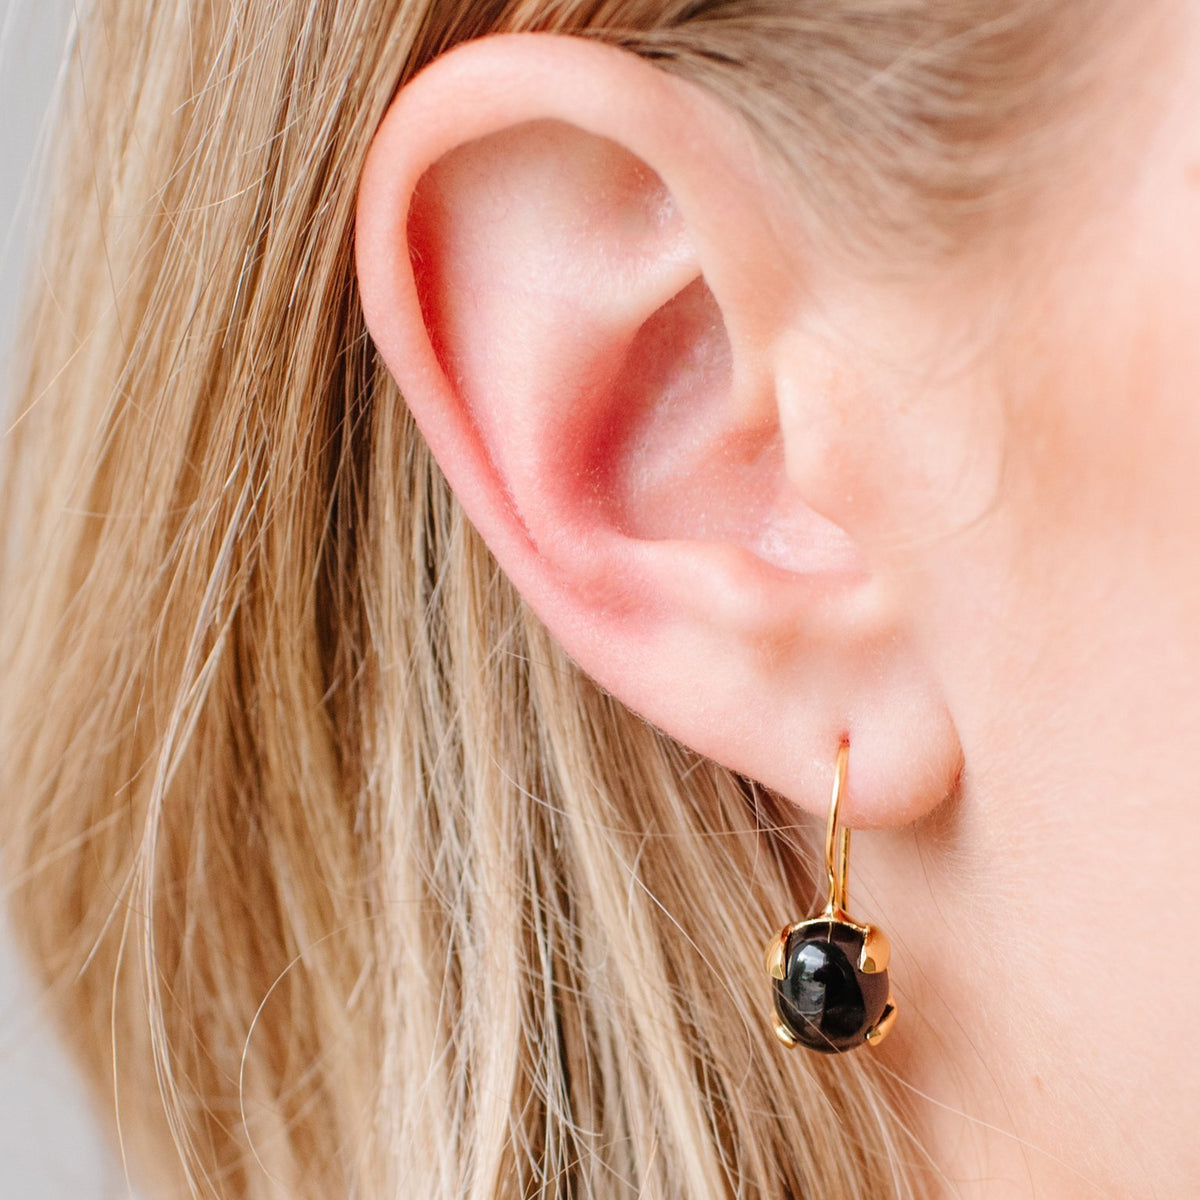 GLEE DROP EARRINGS - BLACK ONYX & GOLD - SO PRETTY CARA COTTER